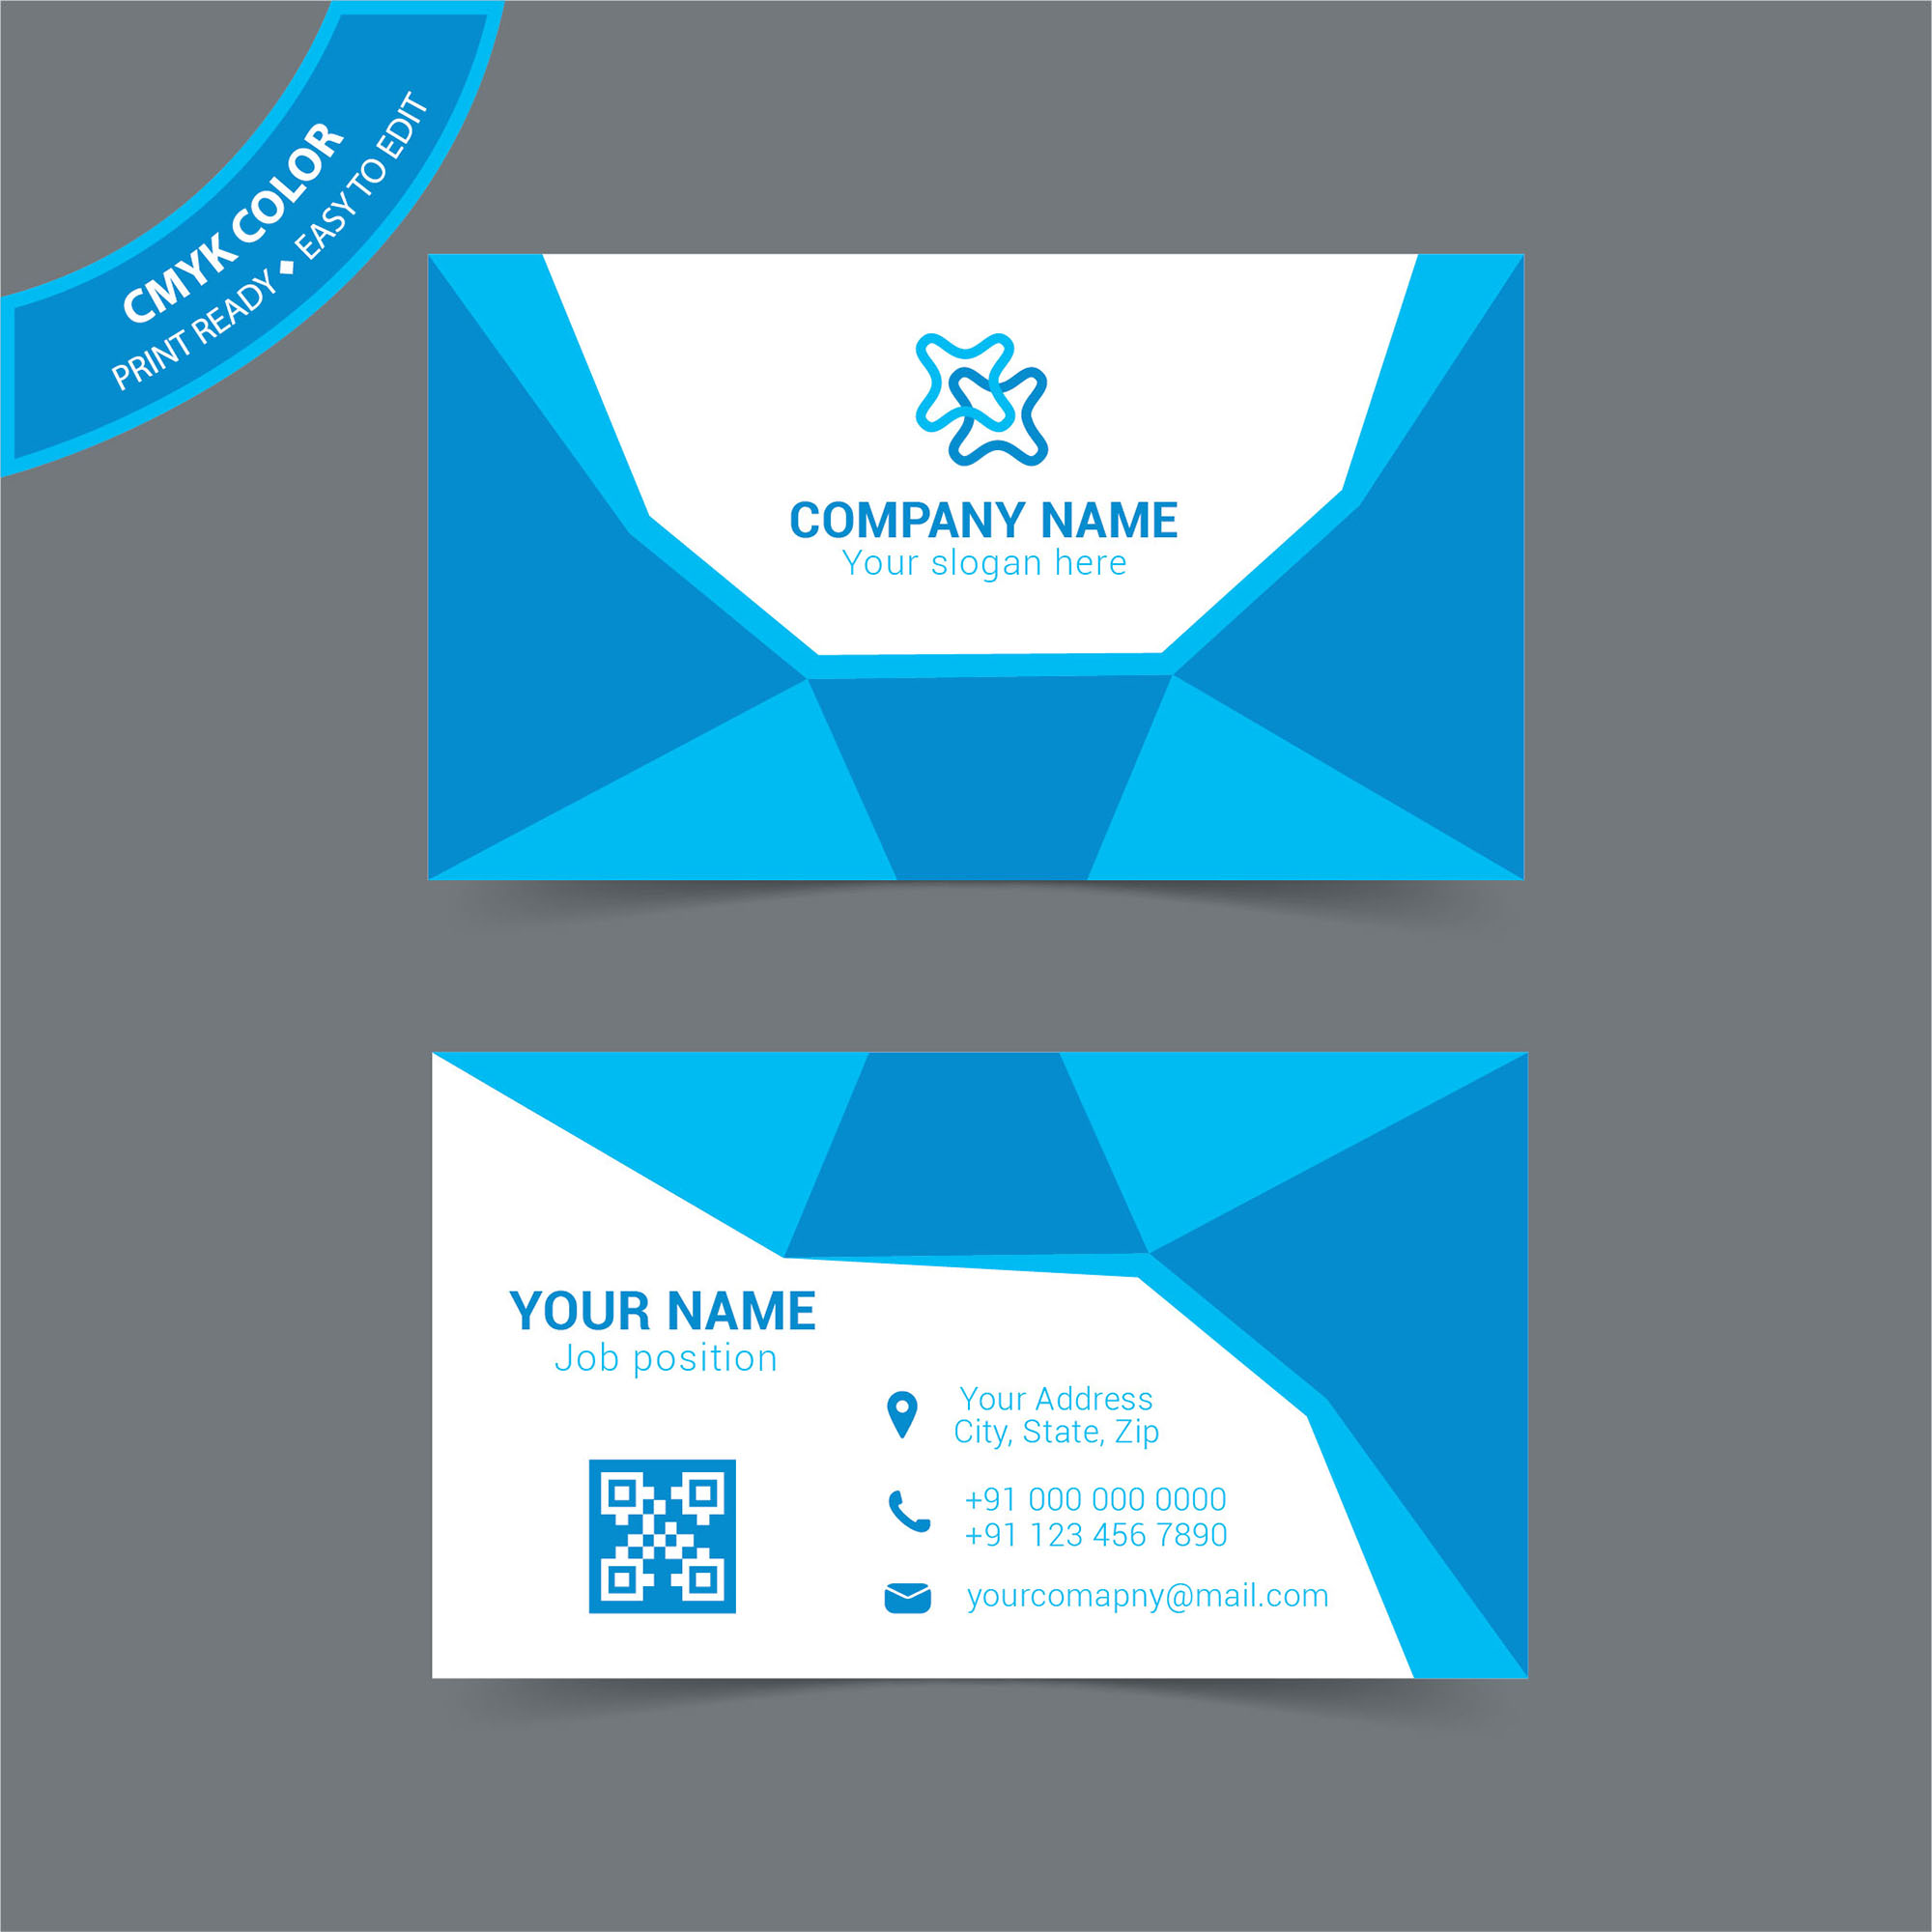 corporate business card template free download wisxicom